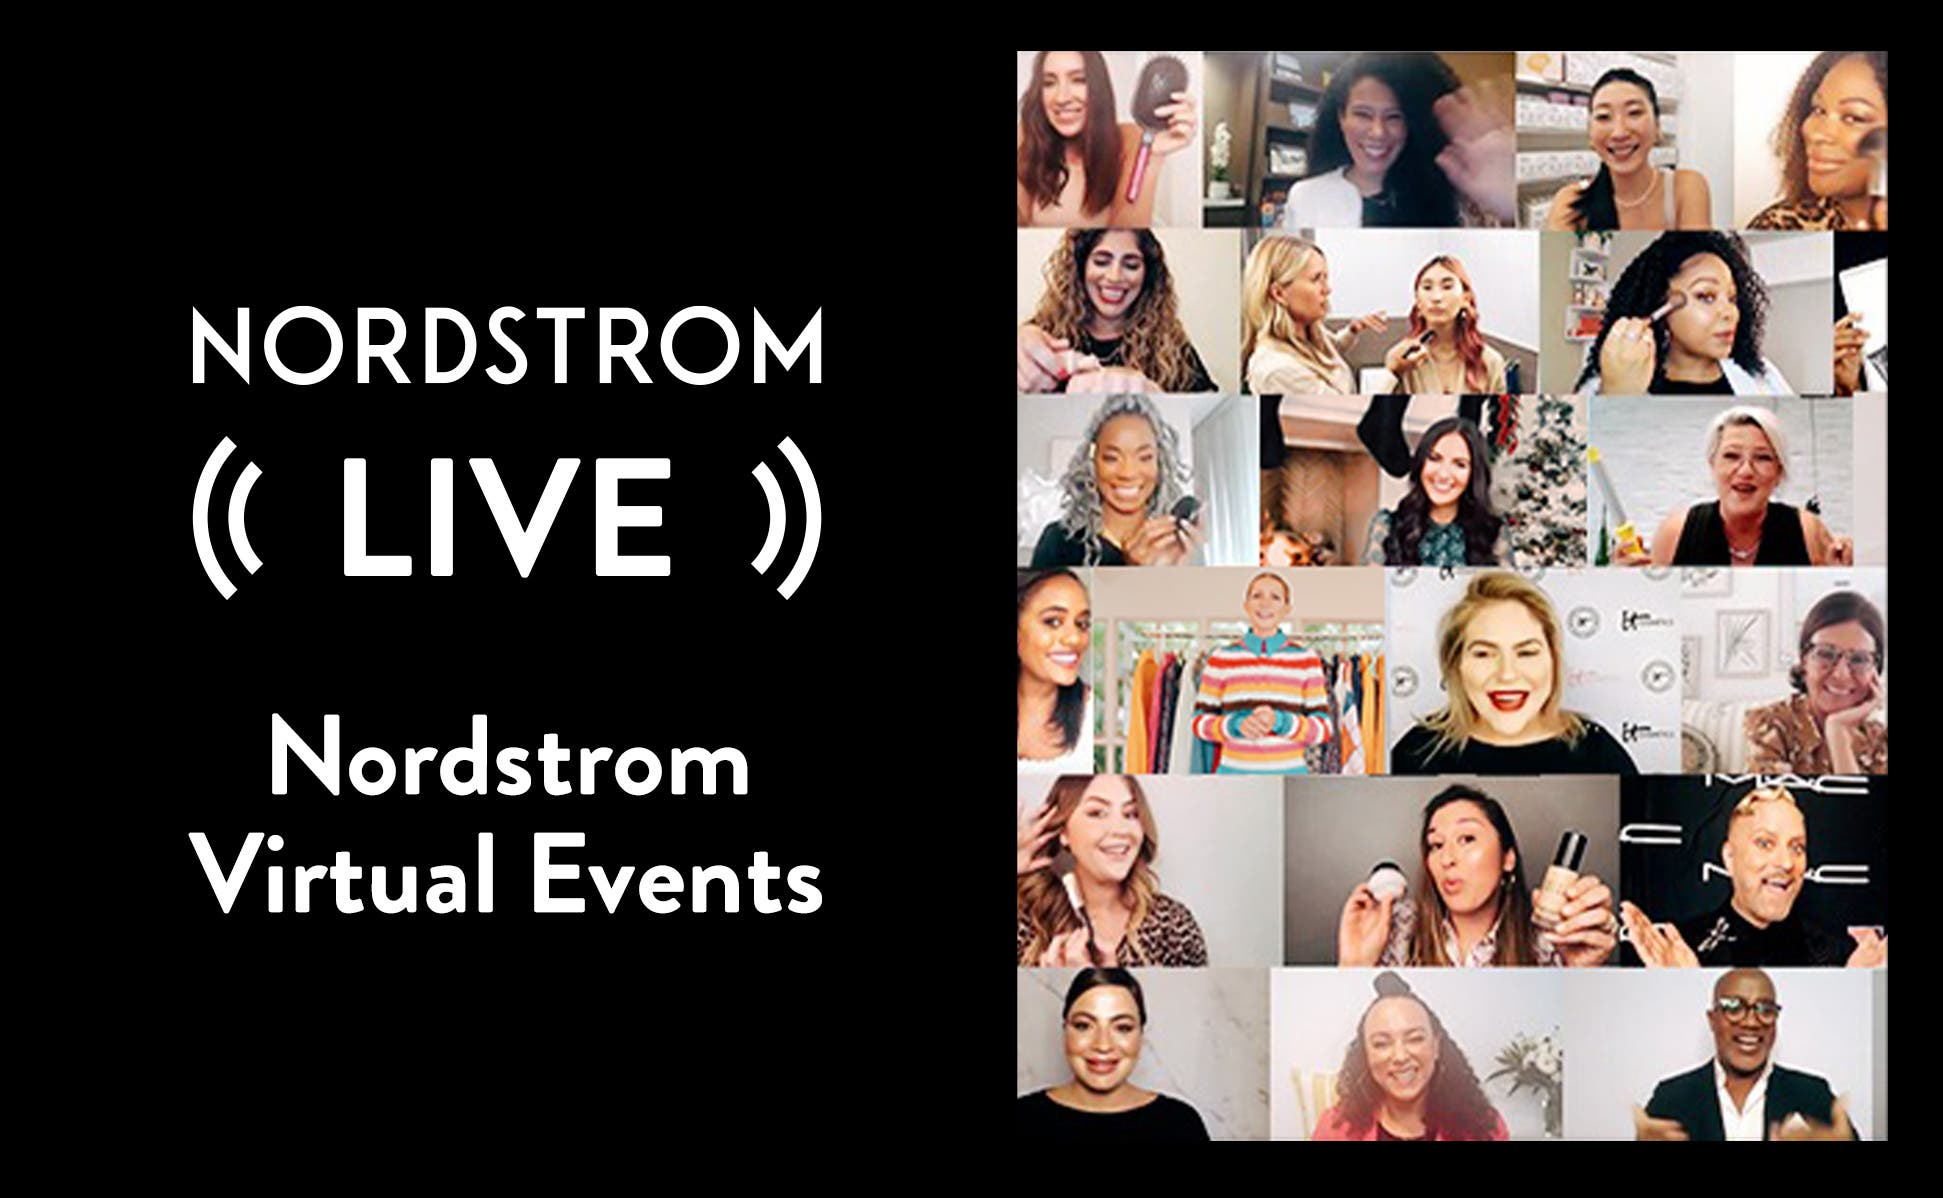 Nordstrom Live virtual events image